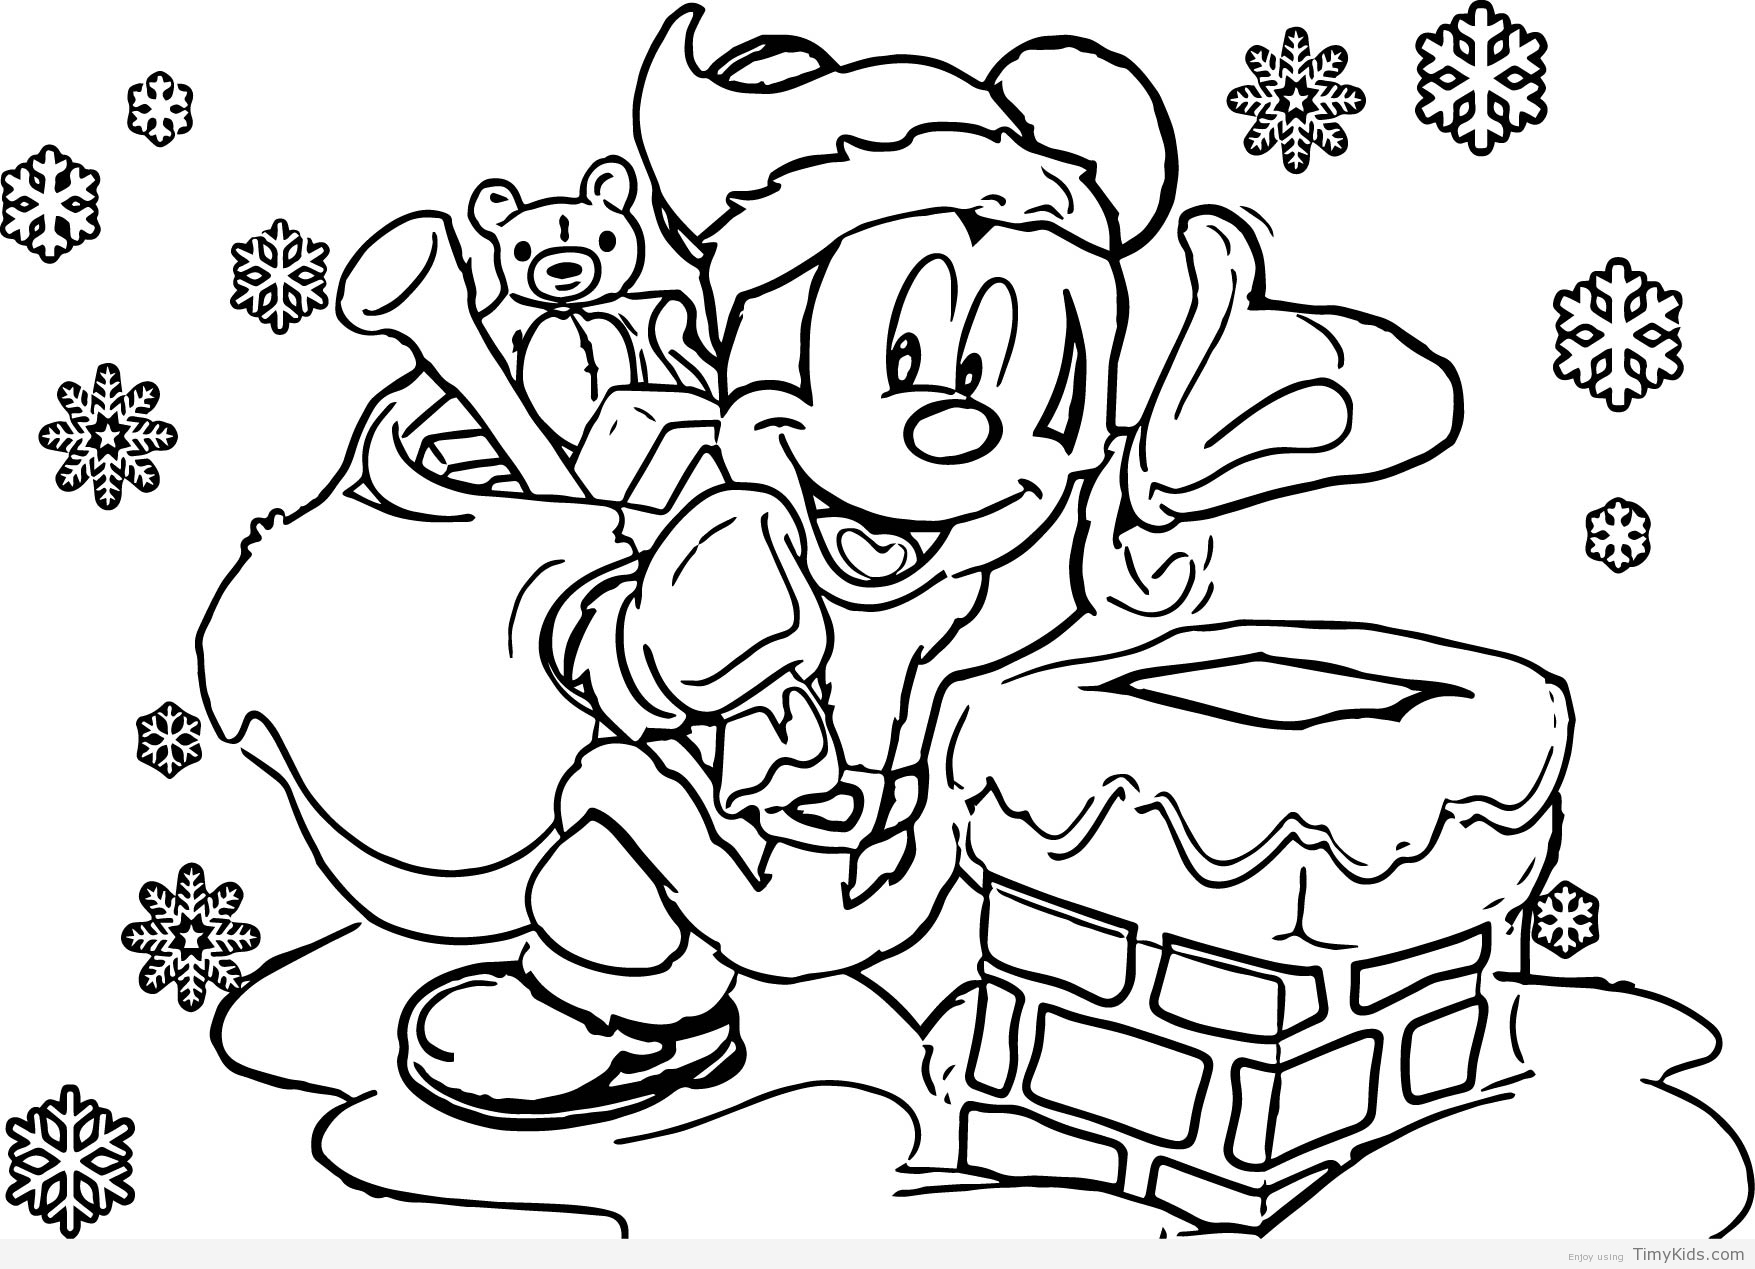 Free Disney Christmas Coloring Pages To Print With Minion Books